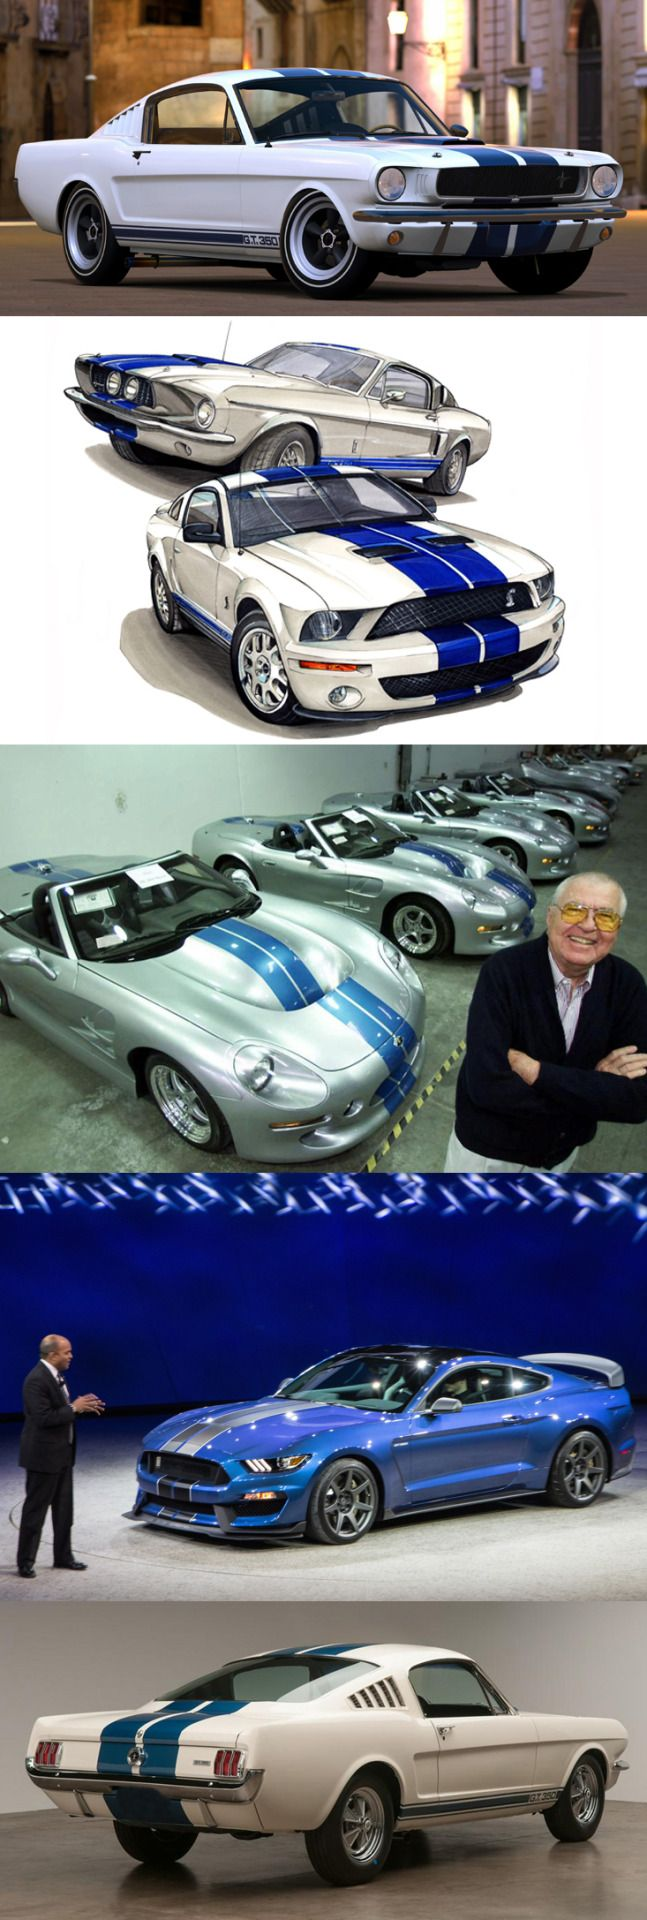 Ford Engines For Sale : 5 Reasons Why Shelby GT350 Mustang is...